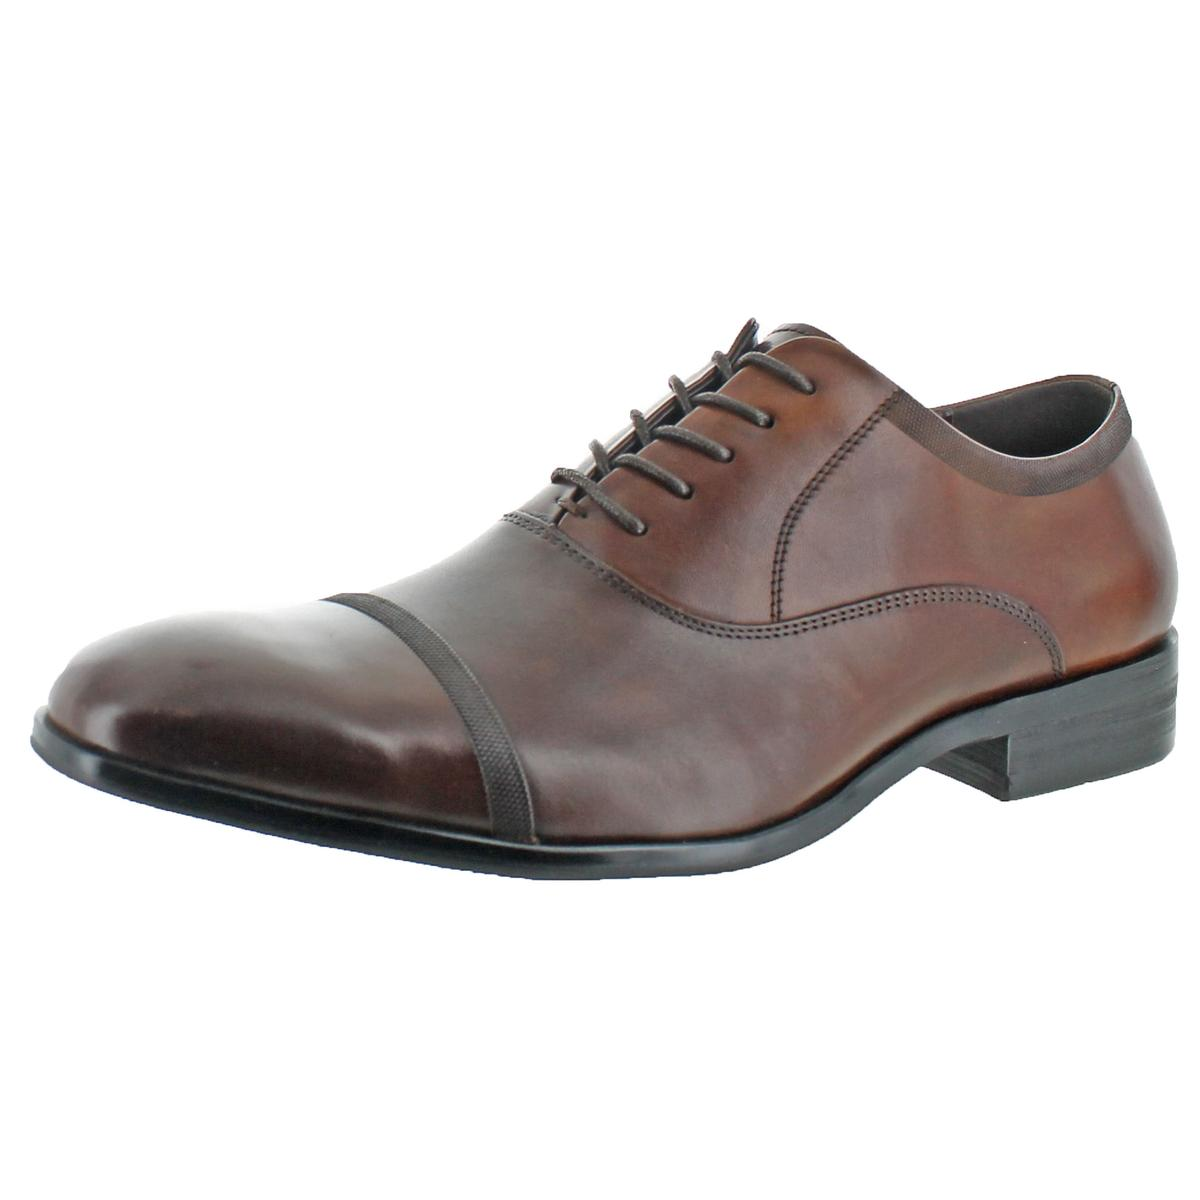 Kenneth Cole Reaction Mens DESIGN21181 Brown Oxfords 10.5 Medium (D) BHFO 2794